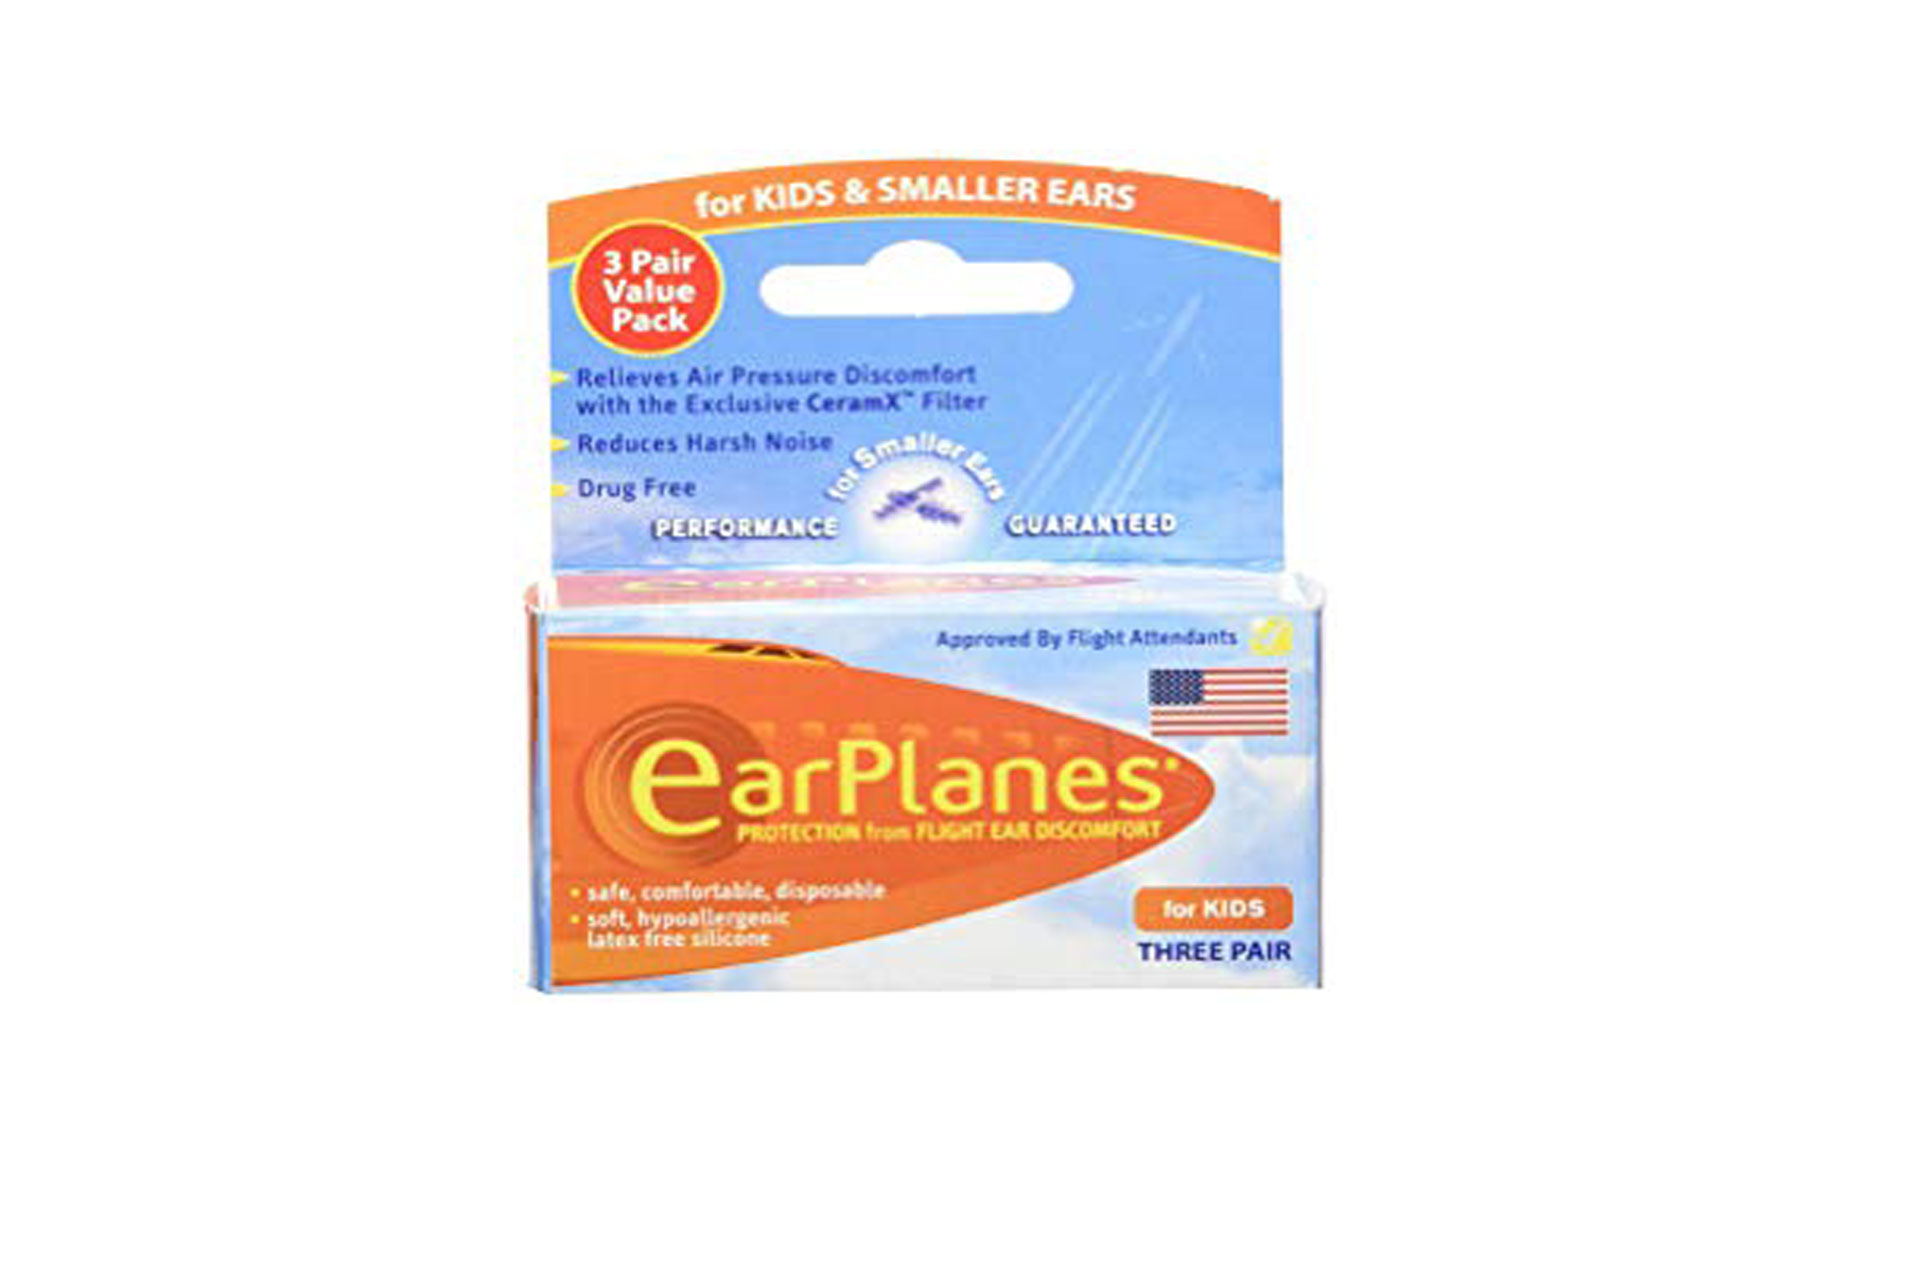 EarPlanesAmazon